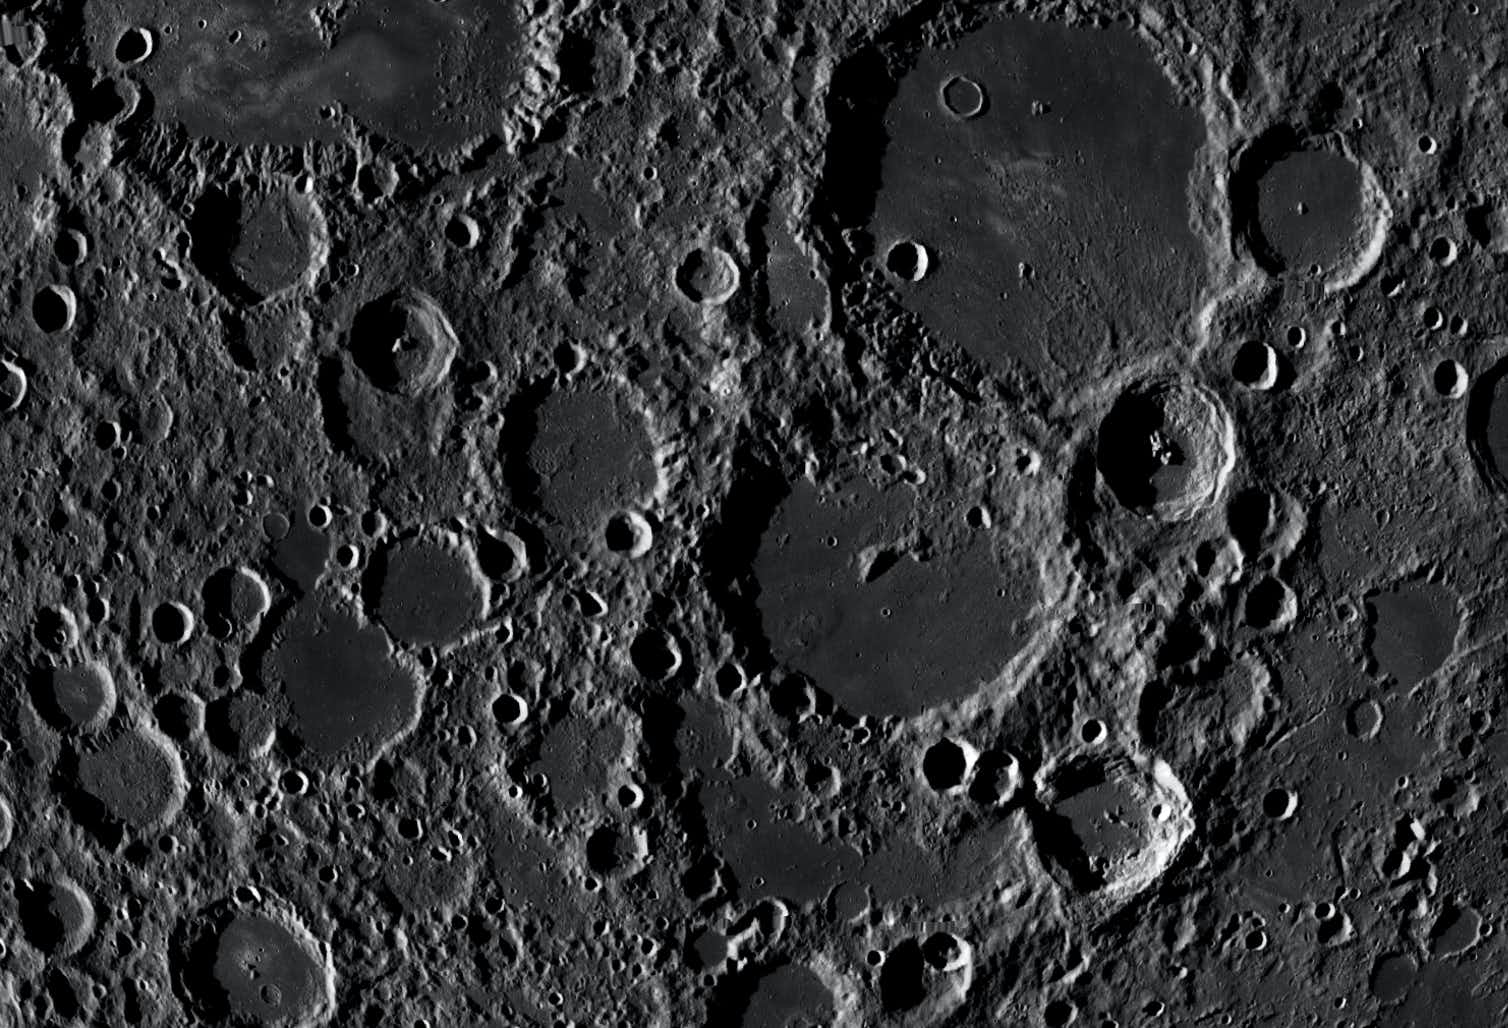 800km wide view of the lunar far side, almost centred on the 180km diameter Von Karman crater. Credit: NASA/LROC Quickmap